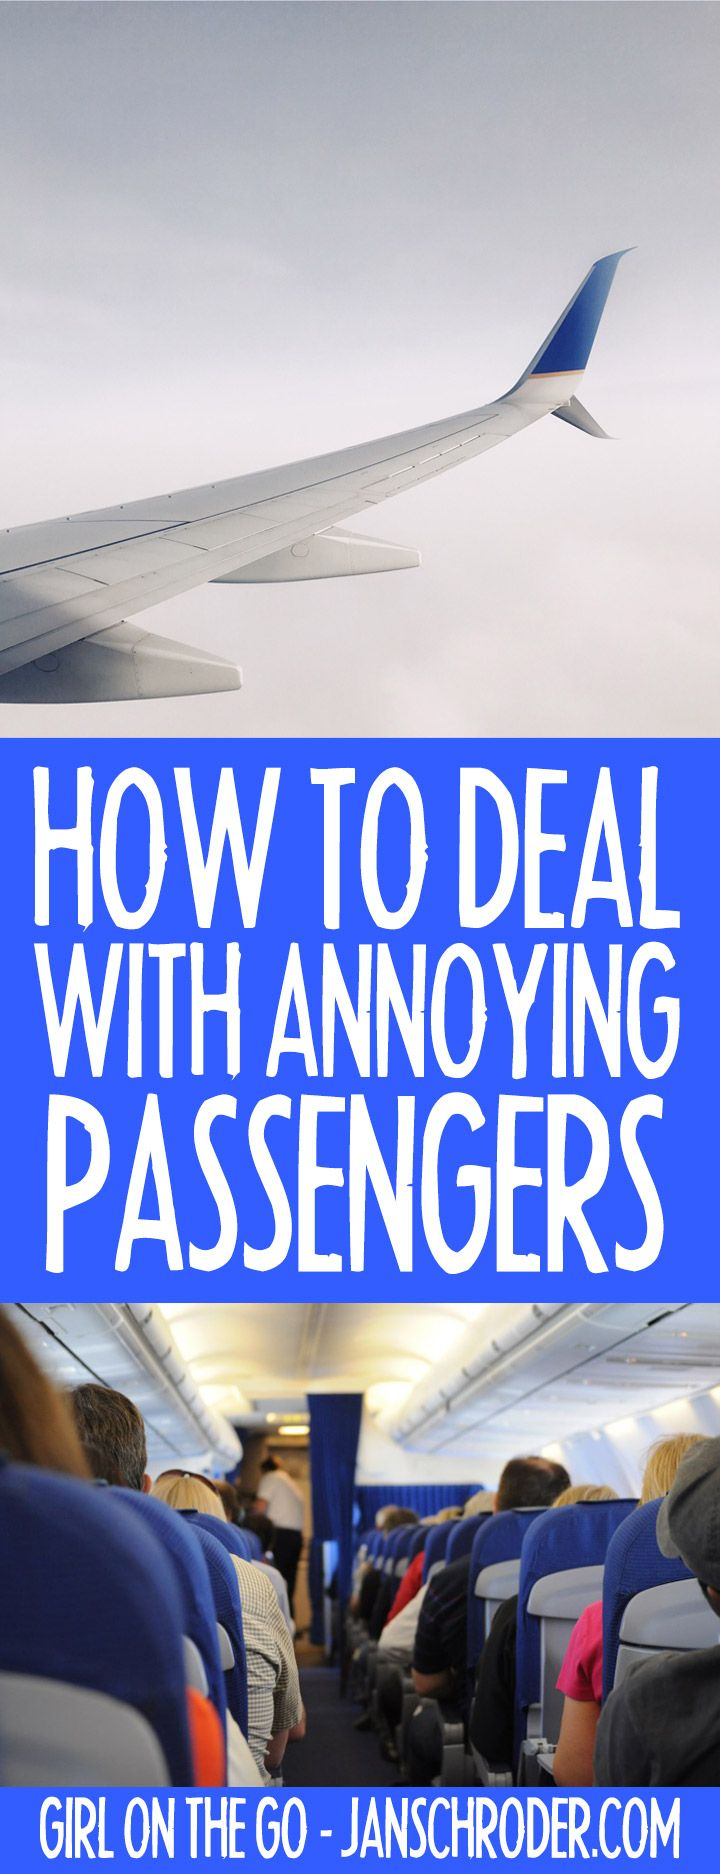 Everything you need to know when it comes to dealing with that especially annoying passenger on your flight. ***************************************** Travel tips and tricks | Flying tips | Travel tips | Travel tips international